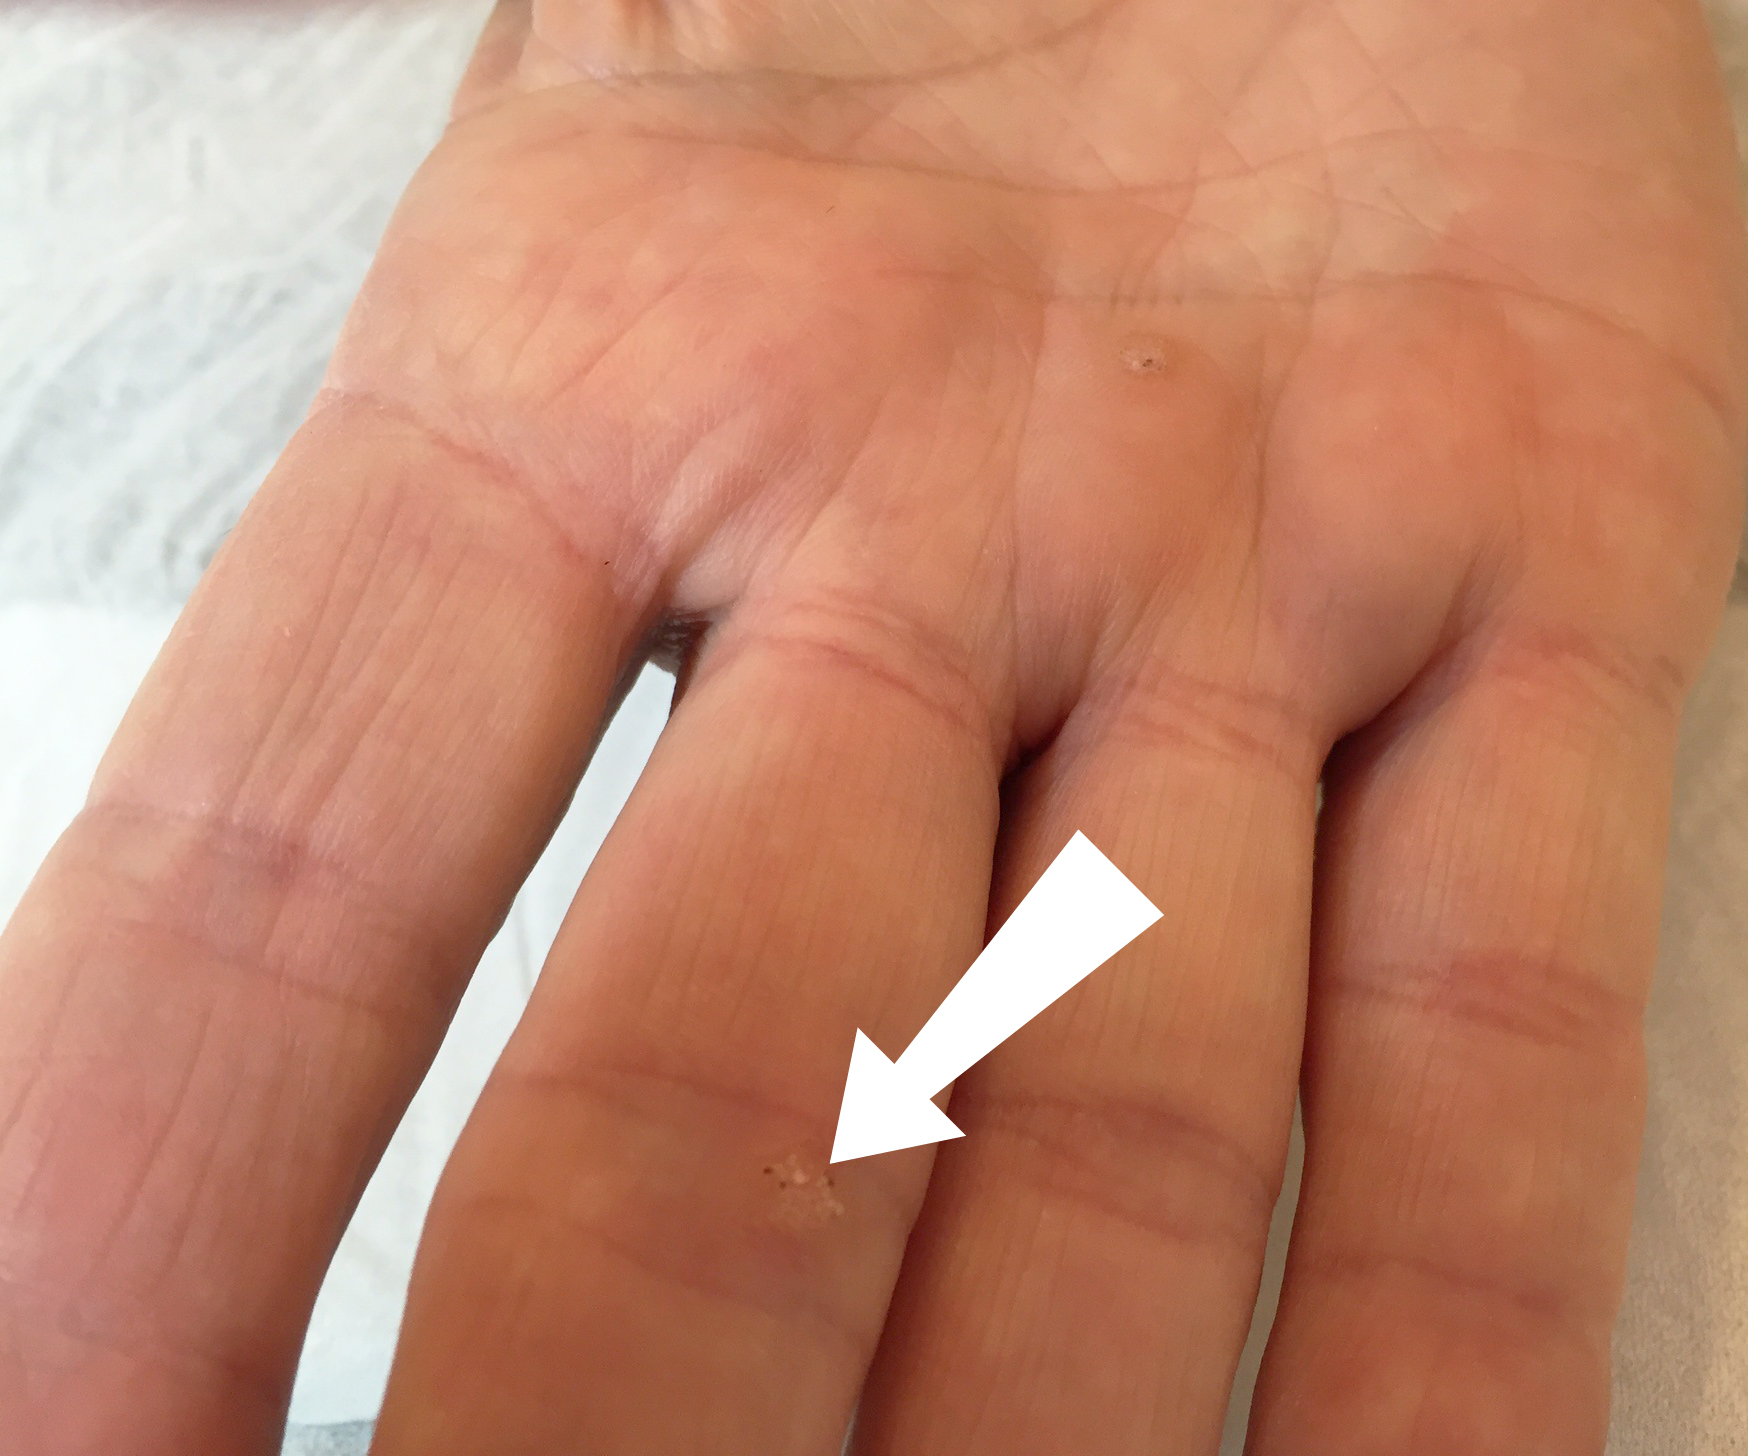 warts on hands during pregnancy